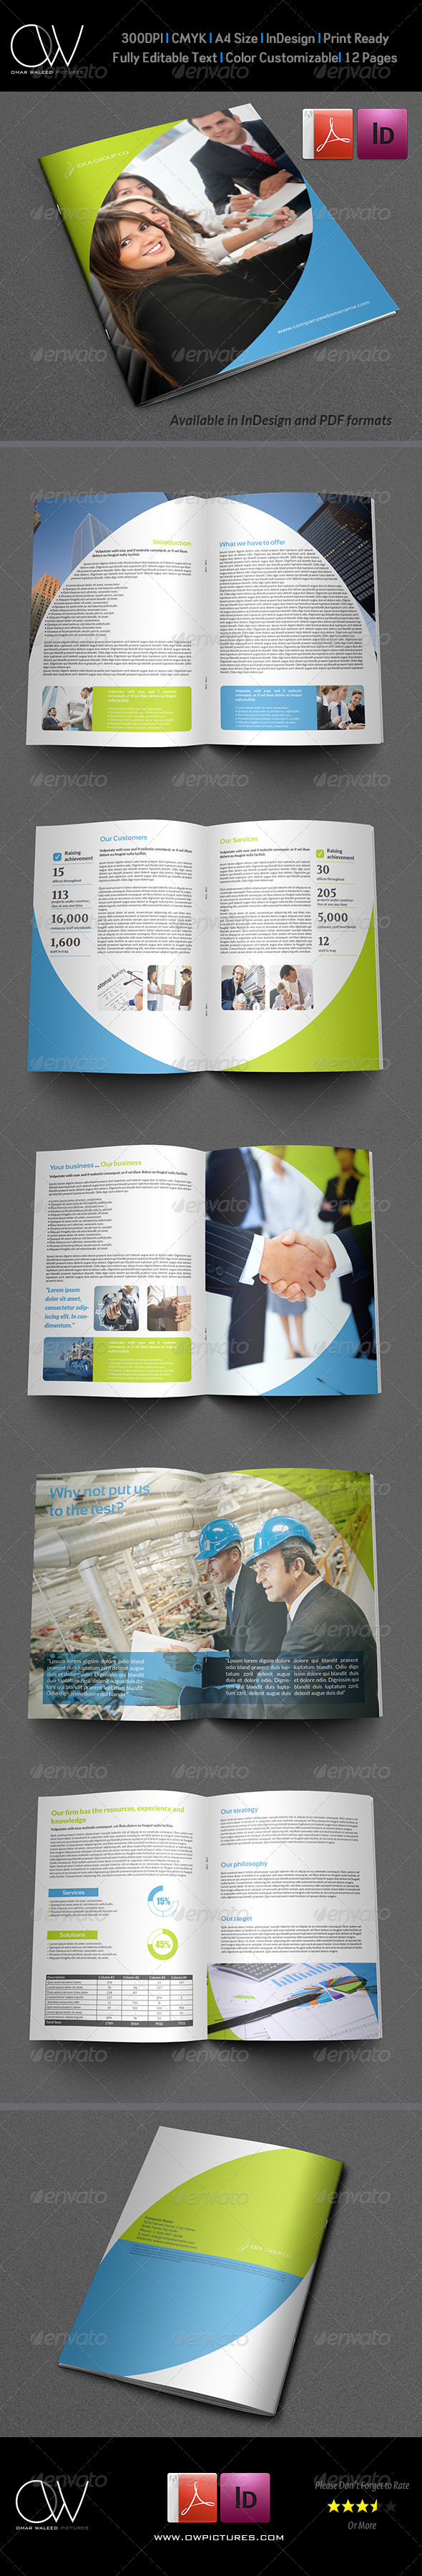 GraphicRiver Company Brochure Template Vol.18 12 Pages 6533305